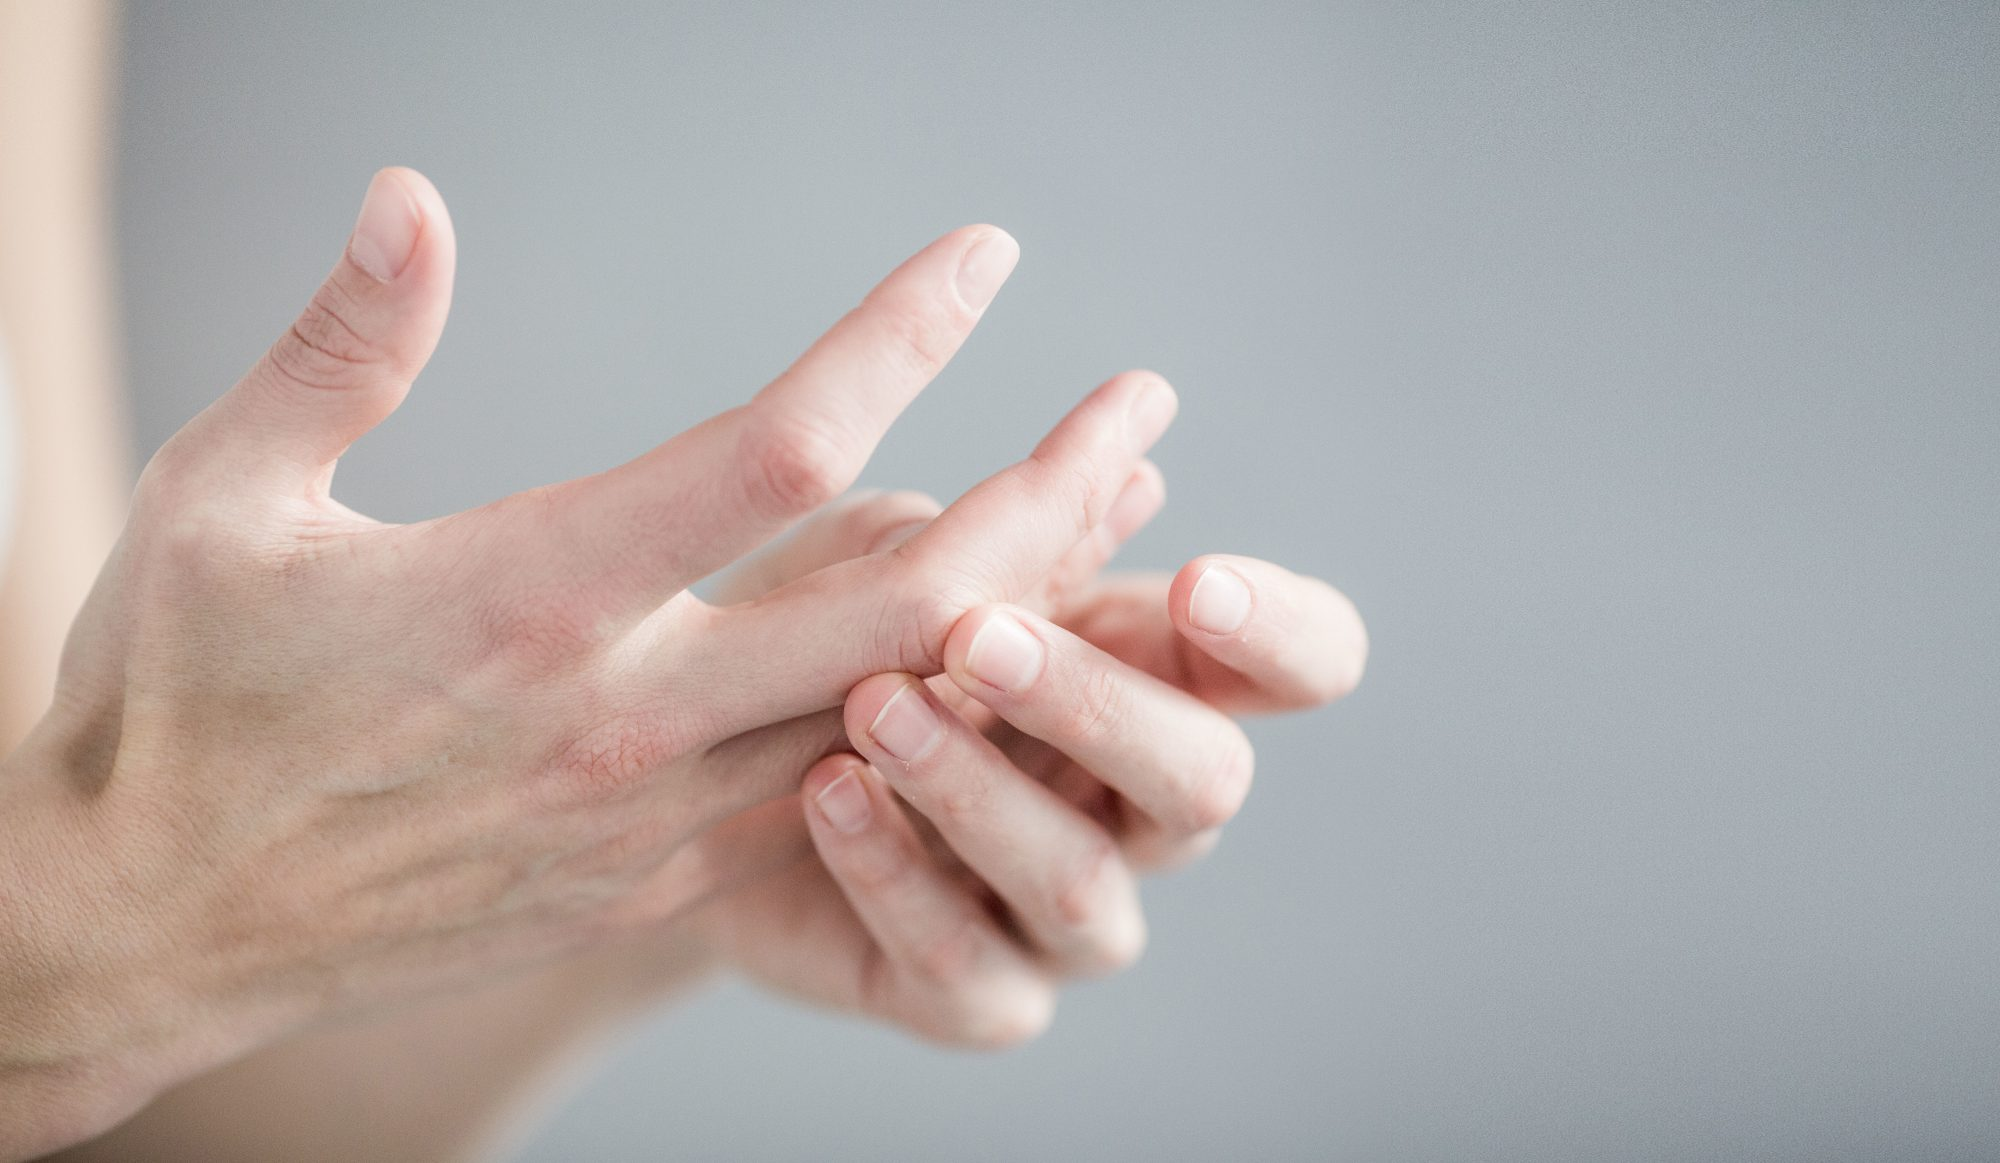 Achy Hands? Knuckle Replacement May Be An Option